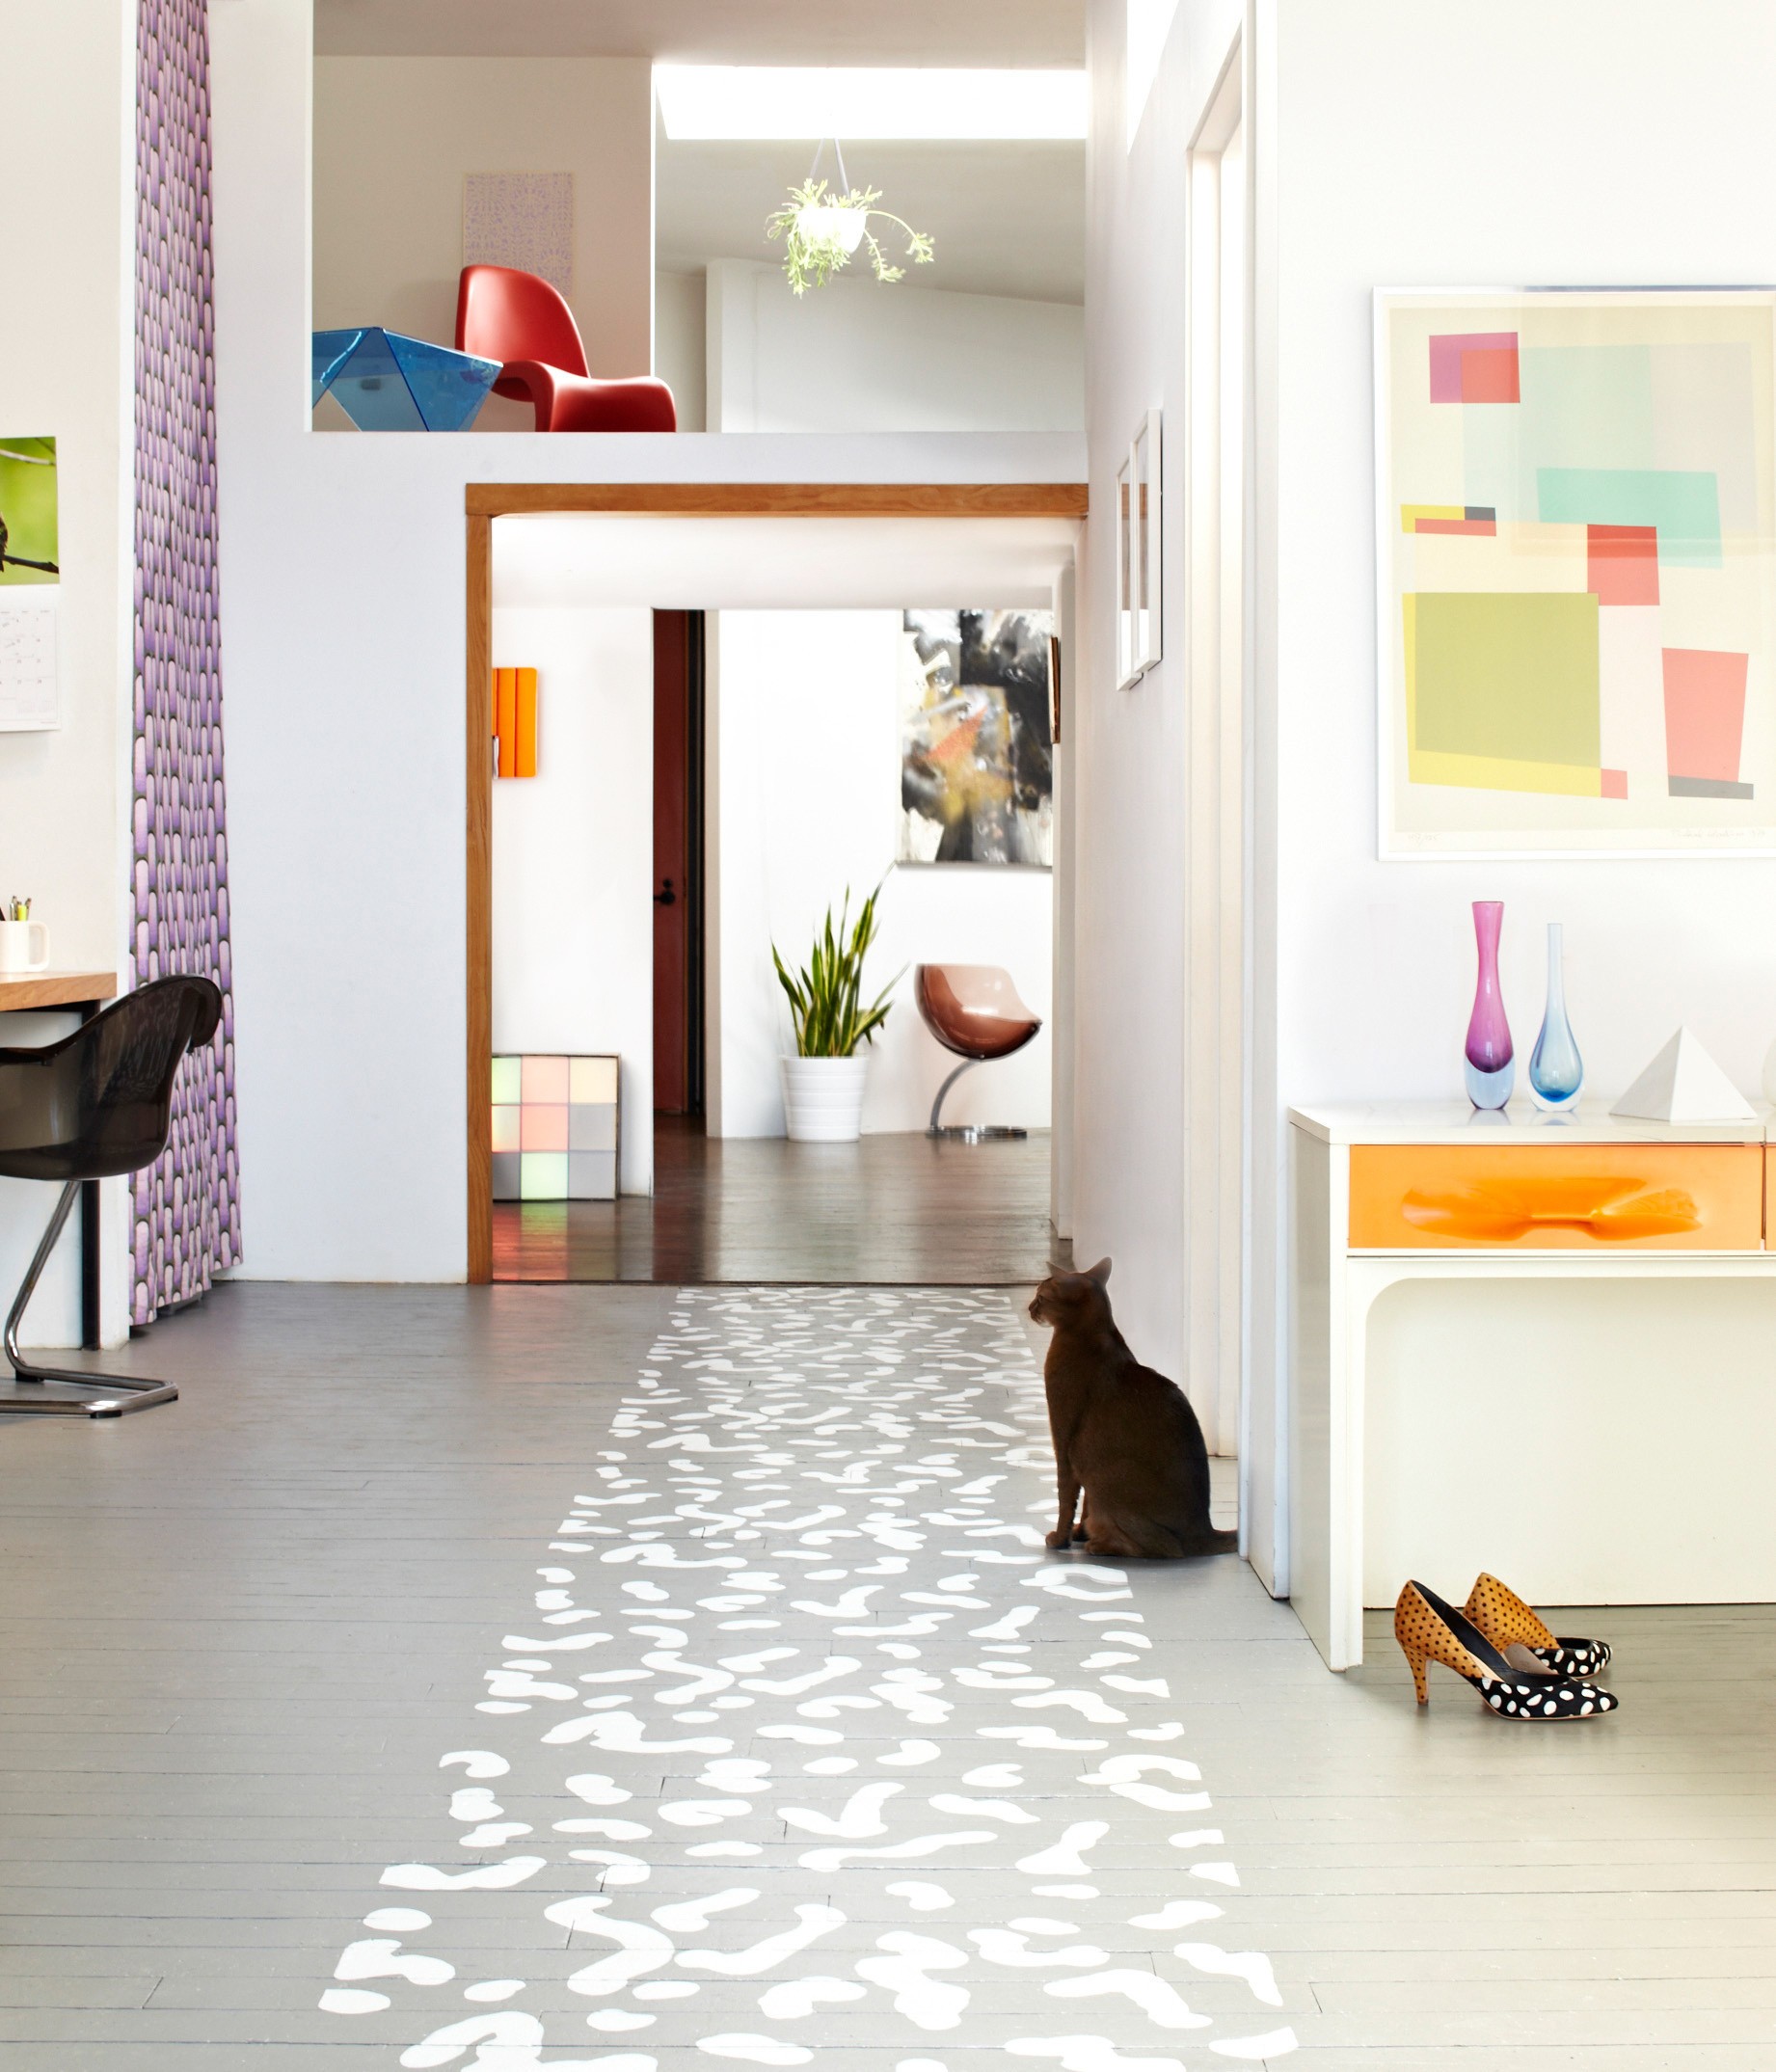 Best ideas about Painted Floors DIY . Save or Pin DIY Project Painted Floor Runner – Design Sponge Now.